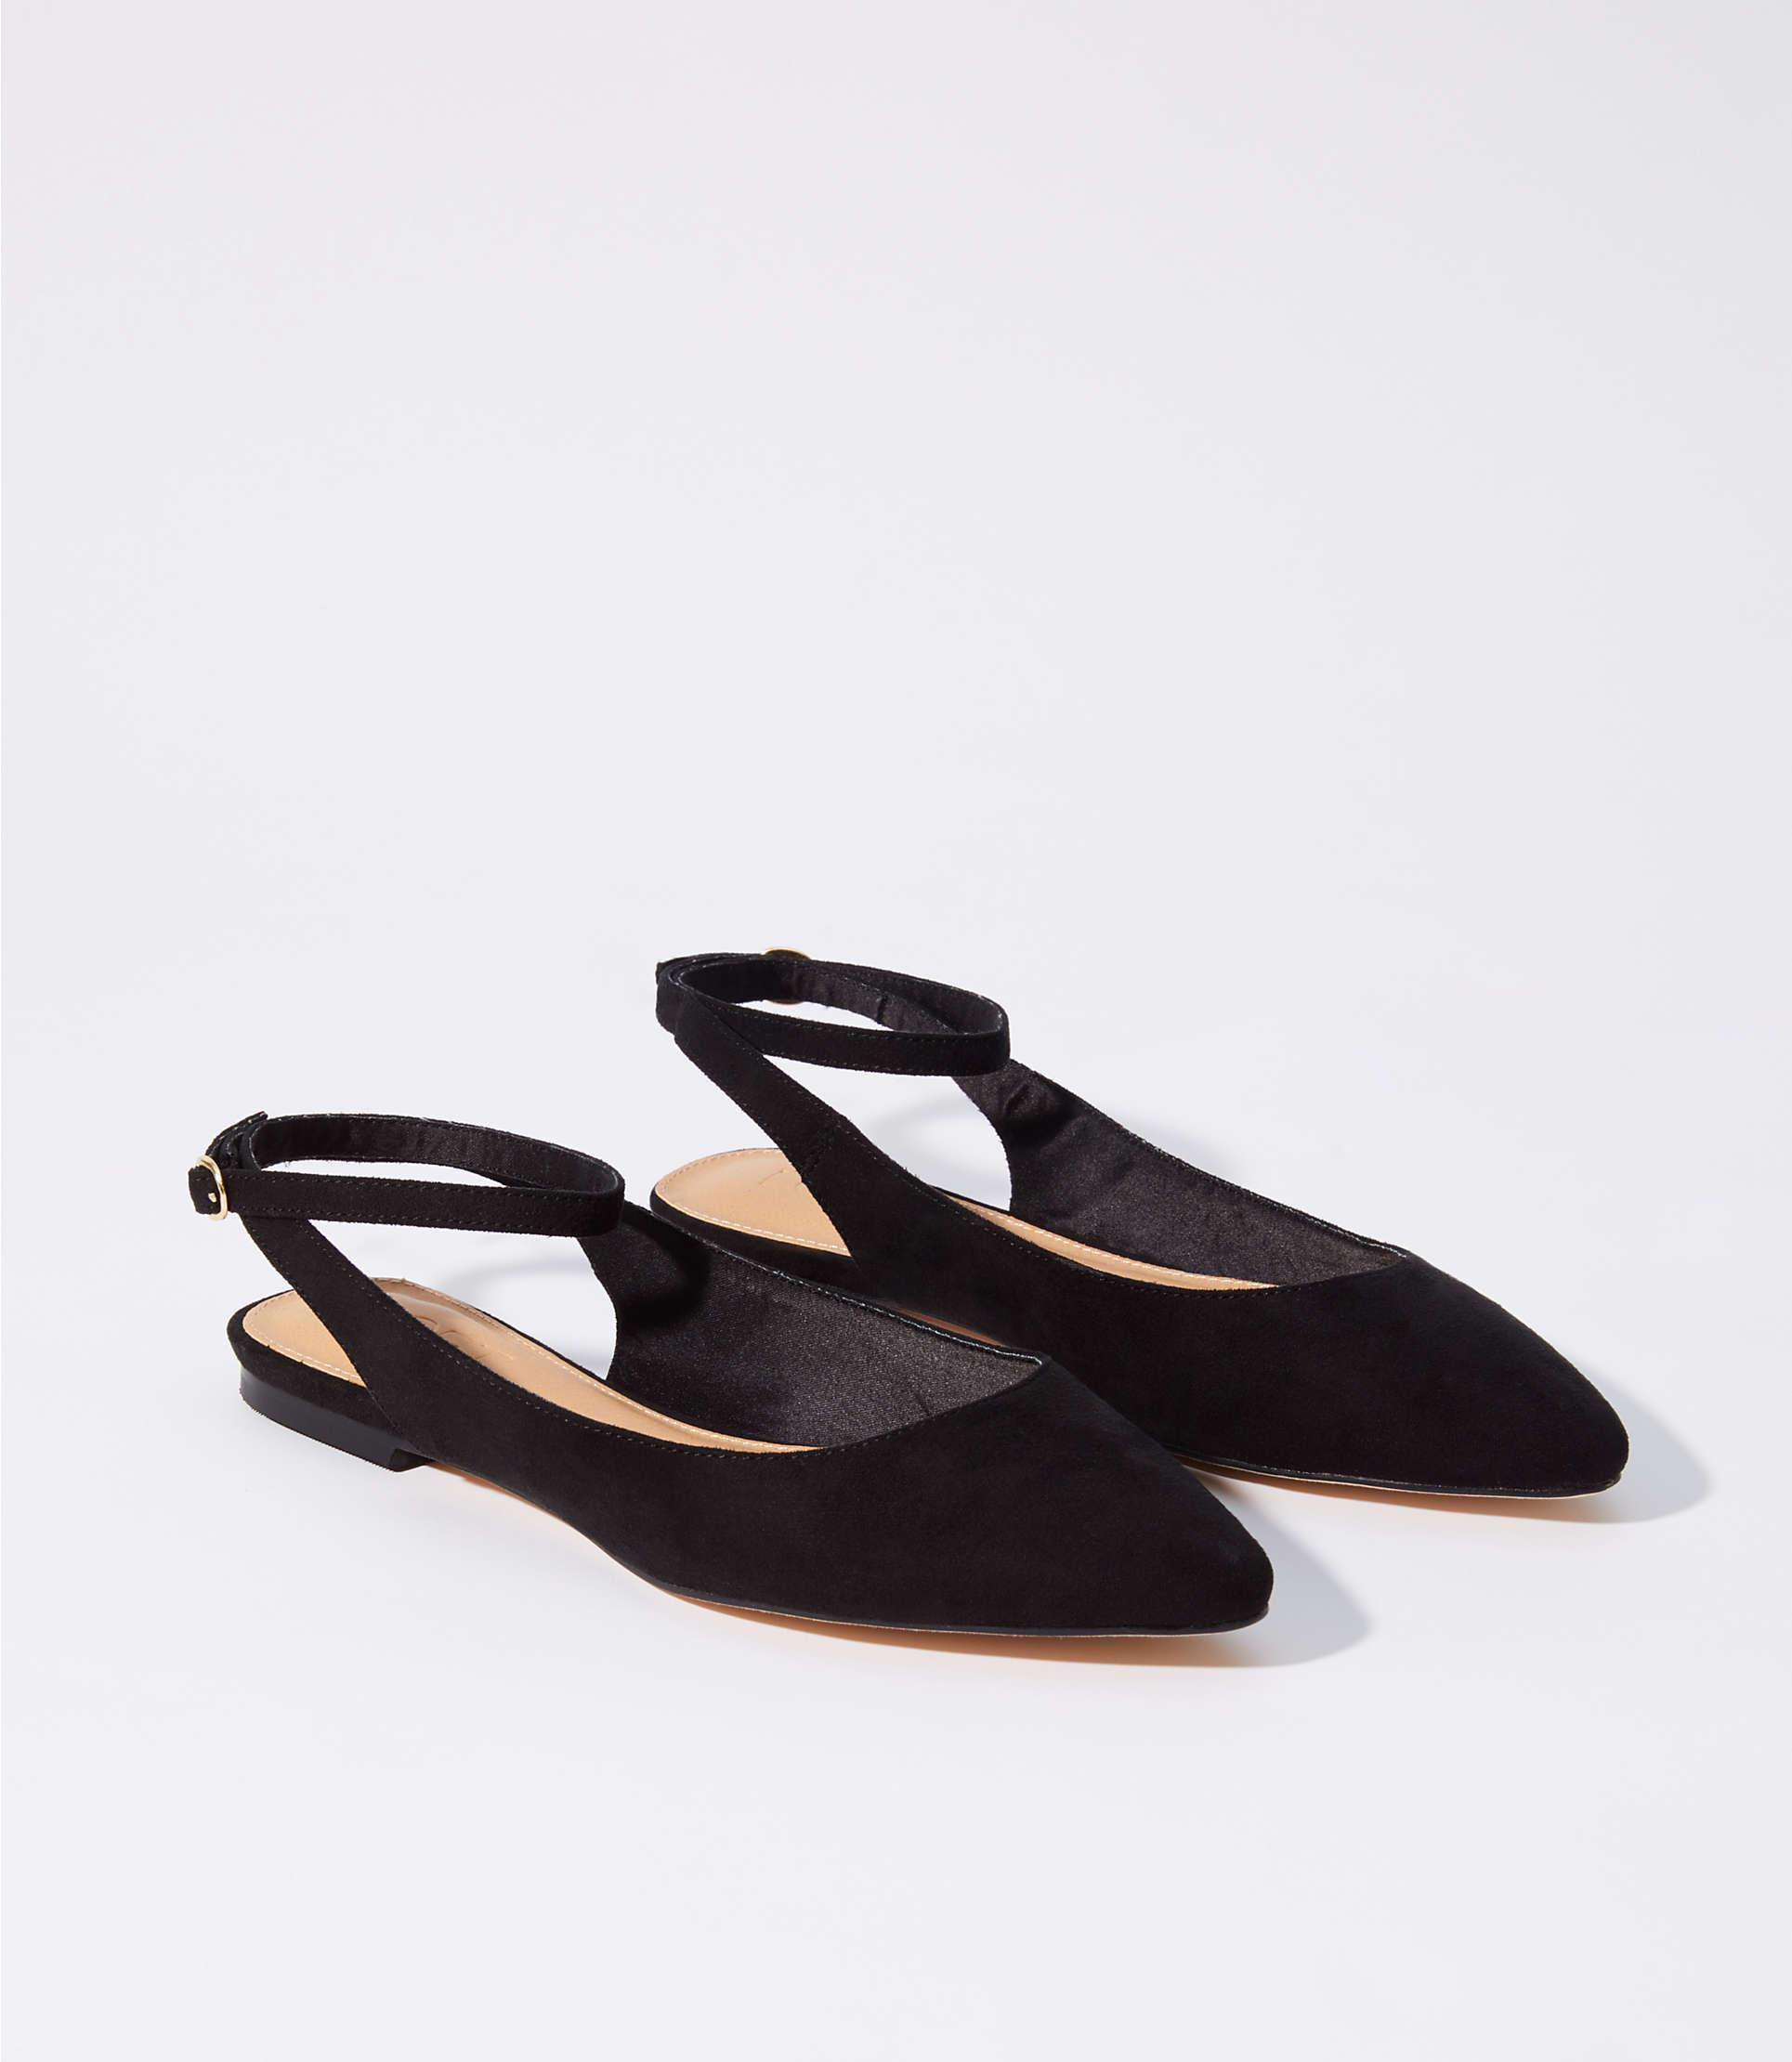 fb7056dfae73 Lyst - LOFT Ankle Strap Flats in Black